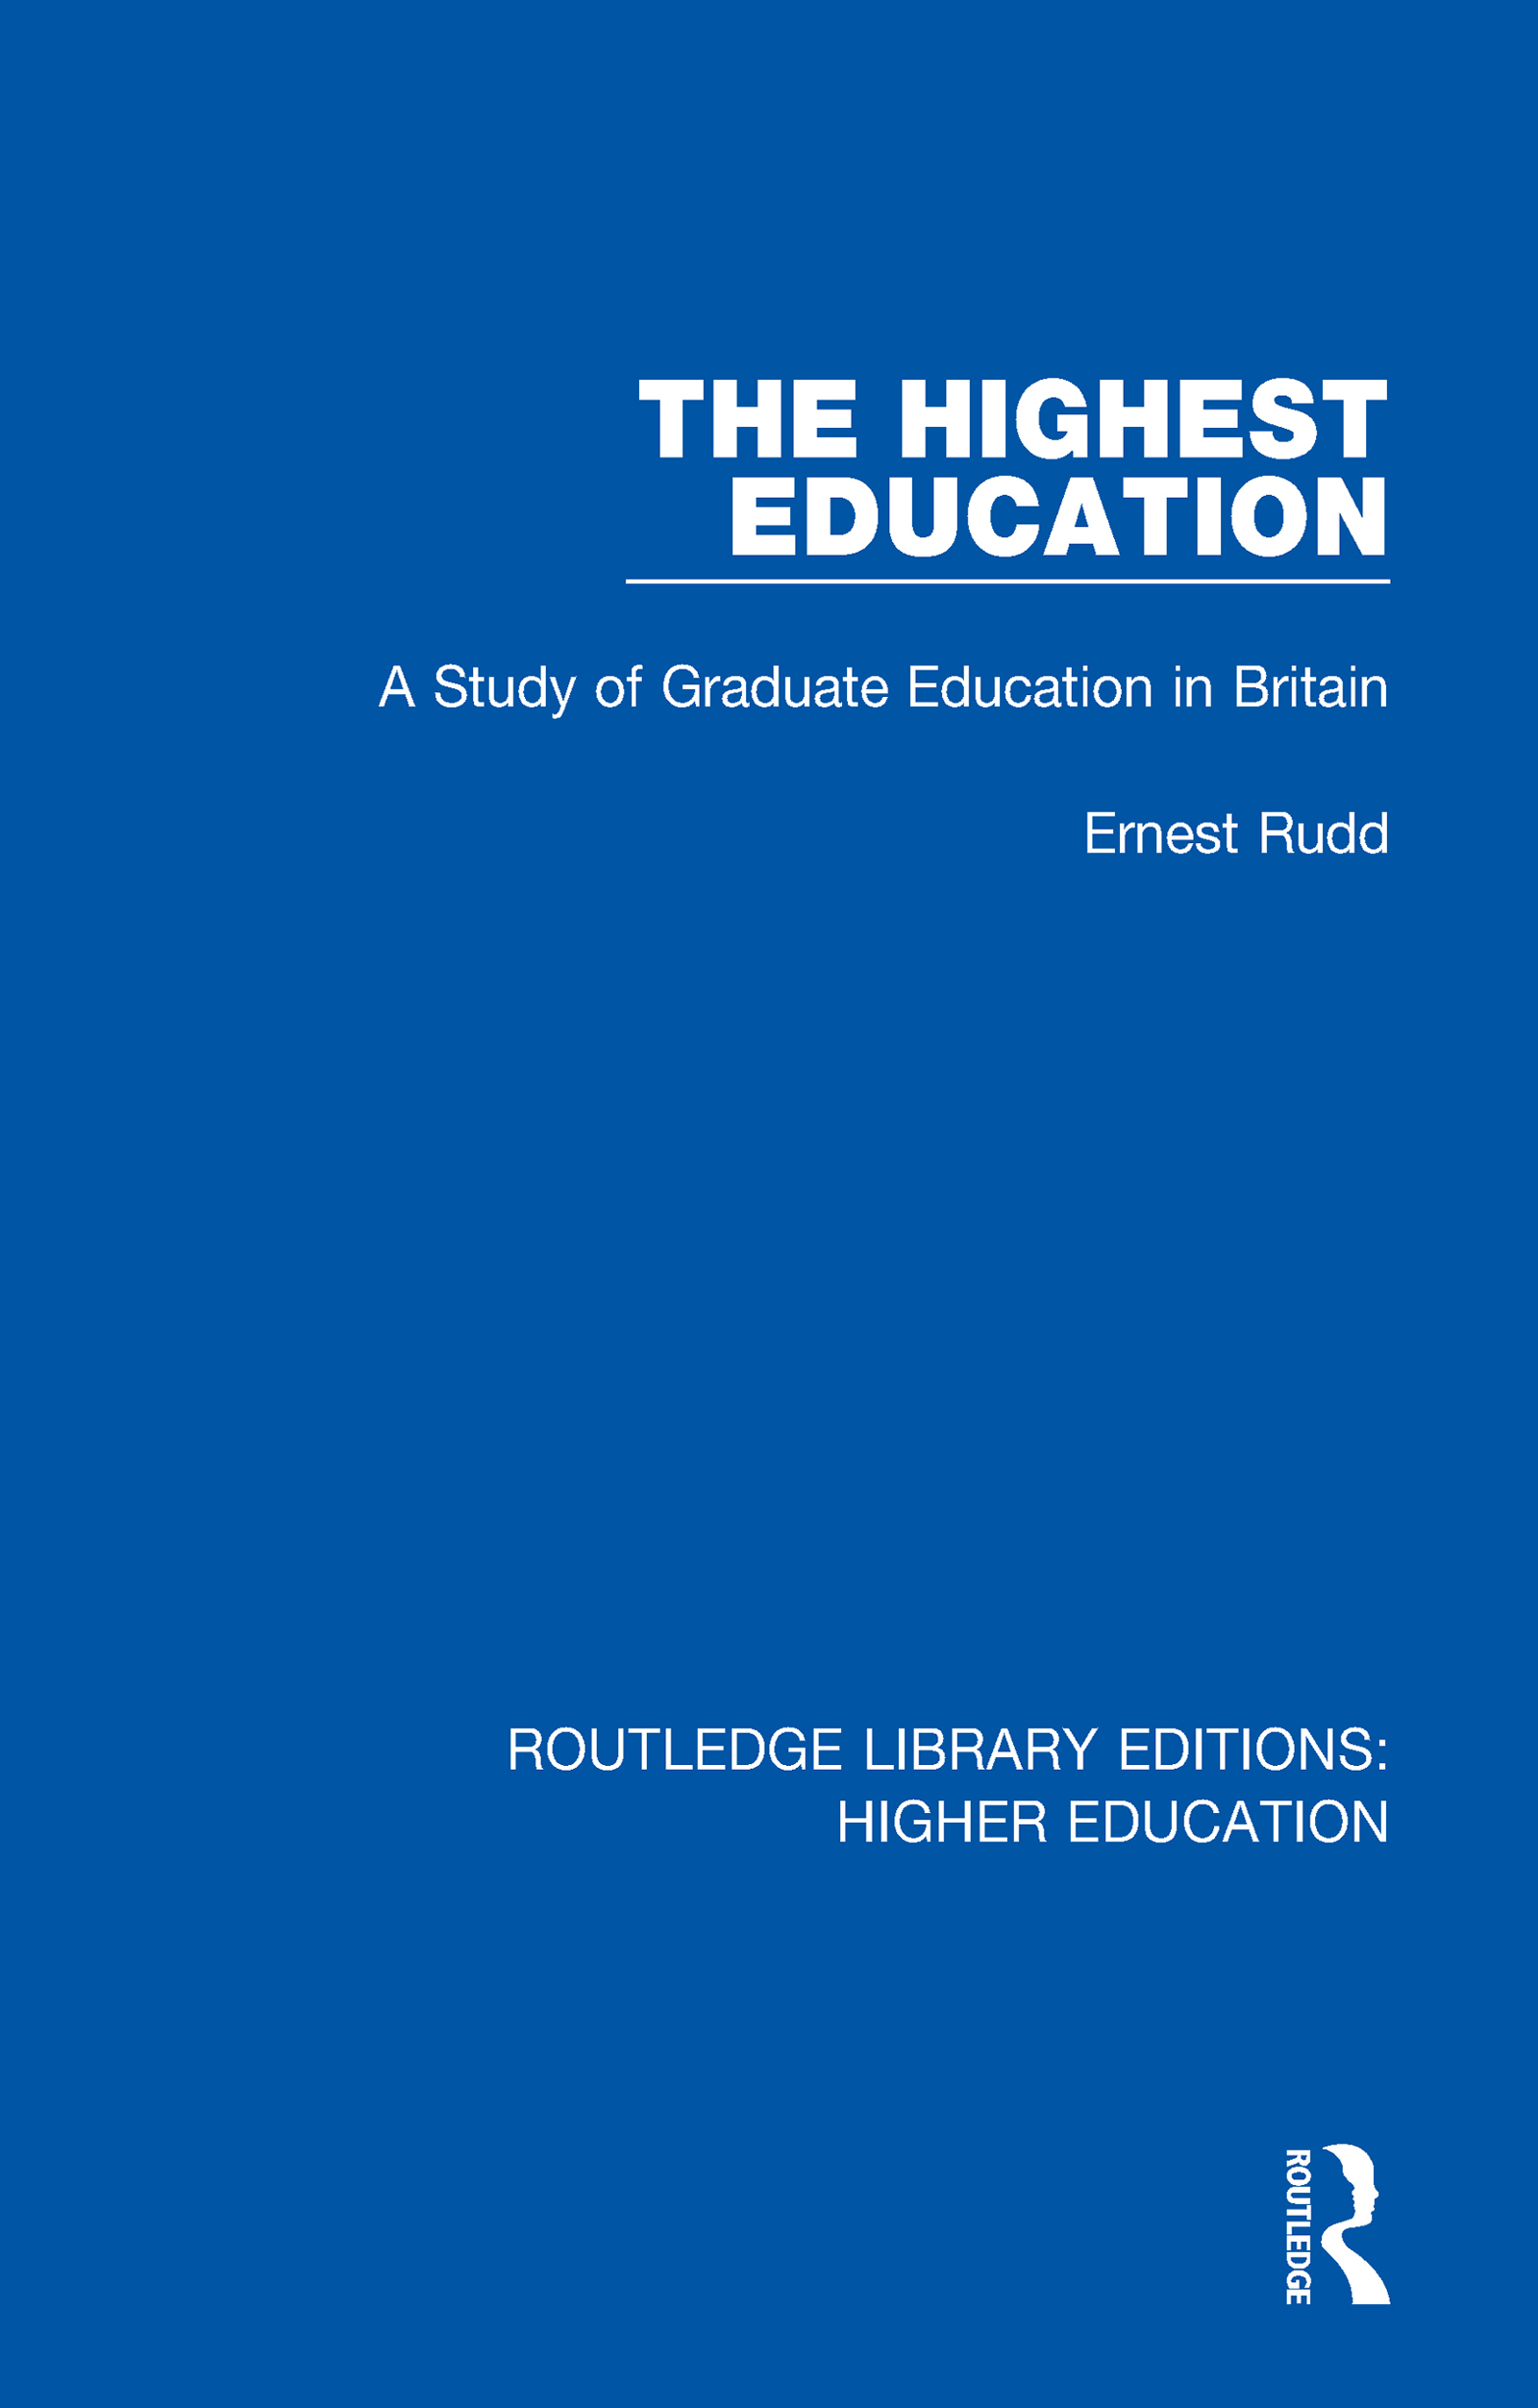 The Highest Education: A Study of Graduate Education in Britain book cover